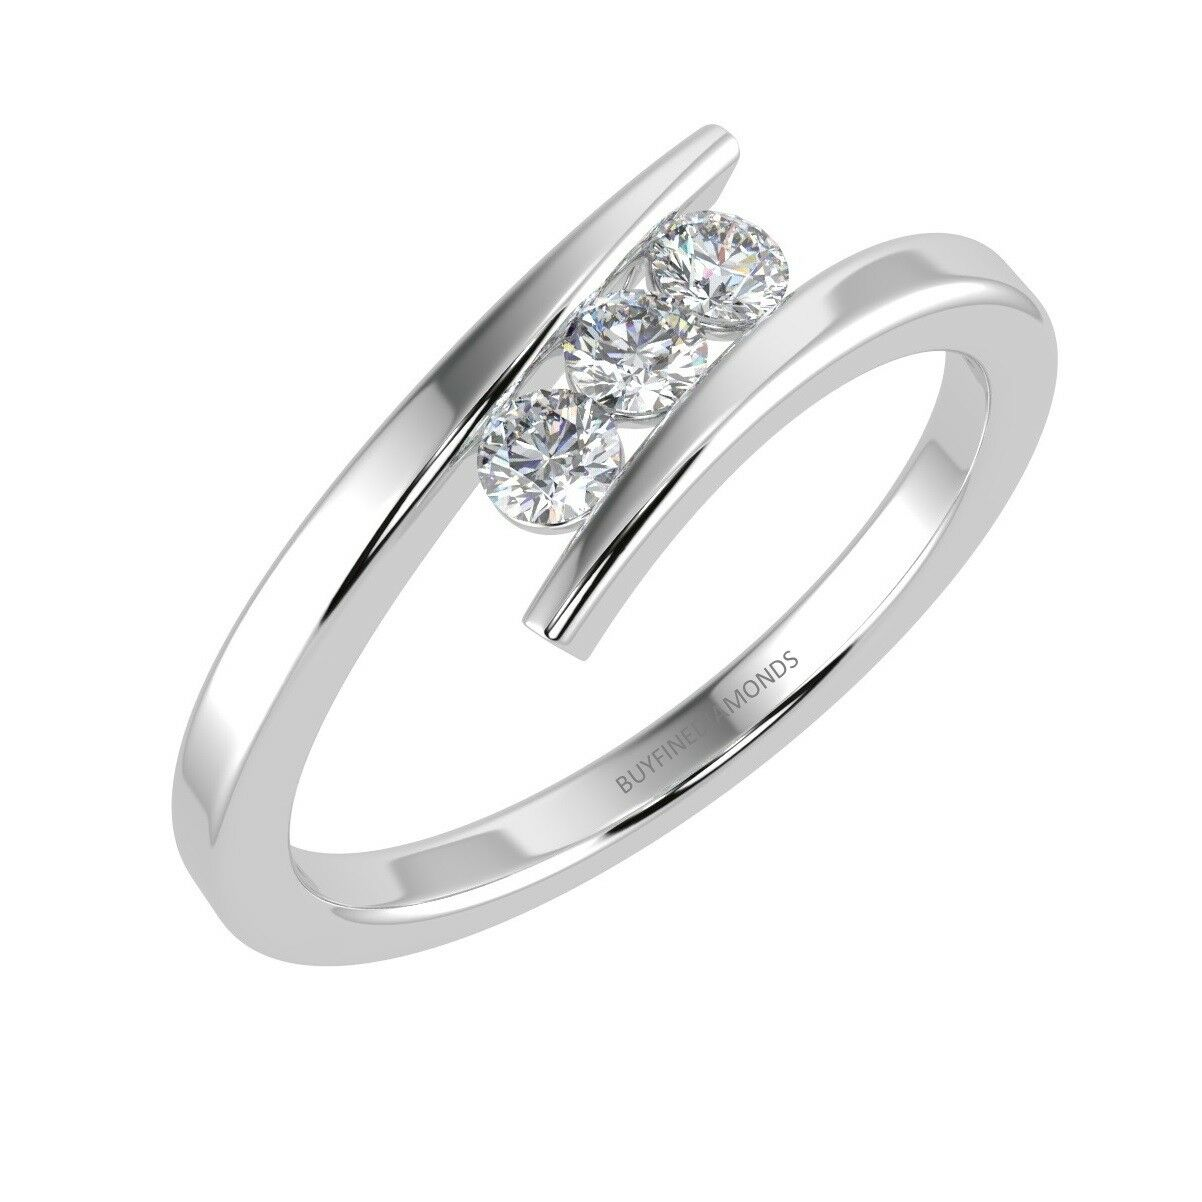 0.25 Carat 3 Round Diamond Tension Set Ring, White gold UK Hallmarked